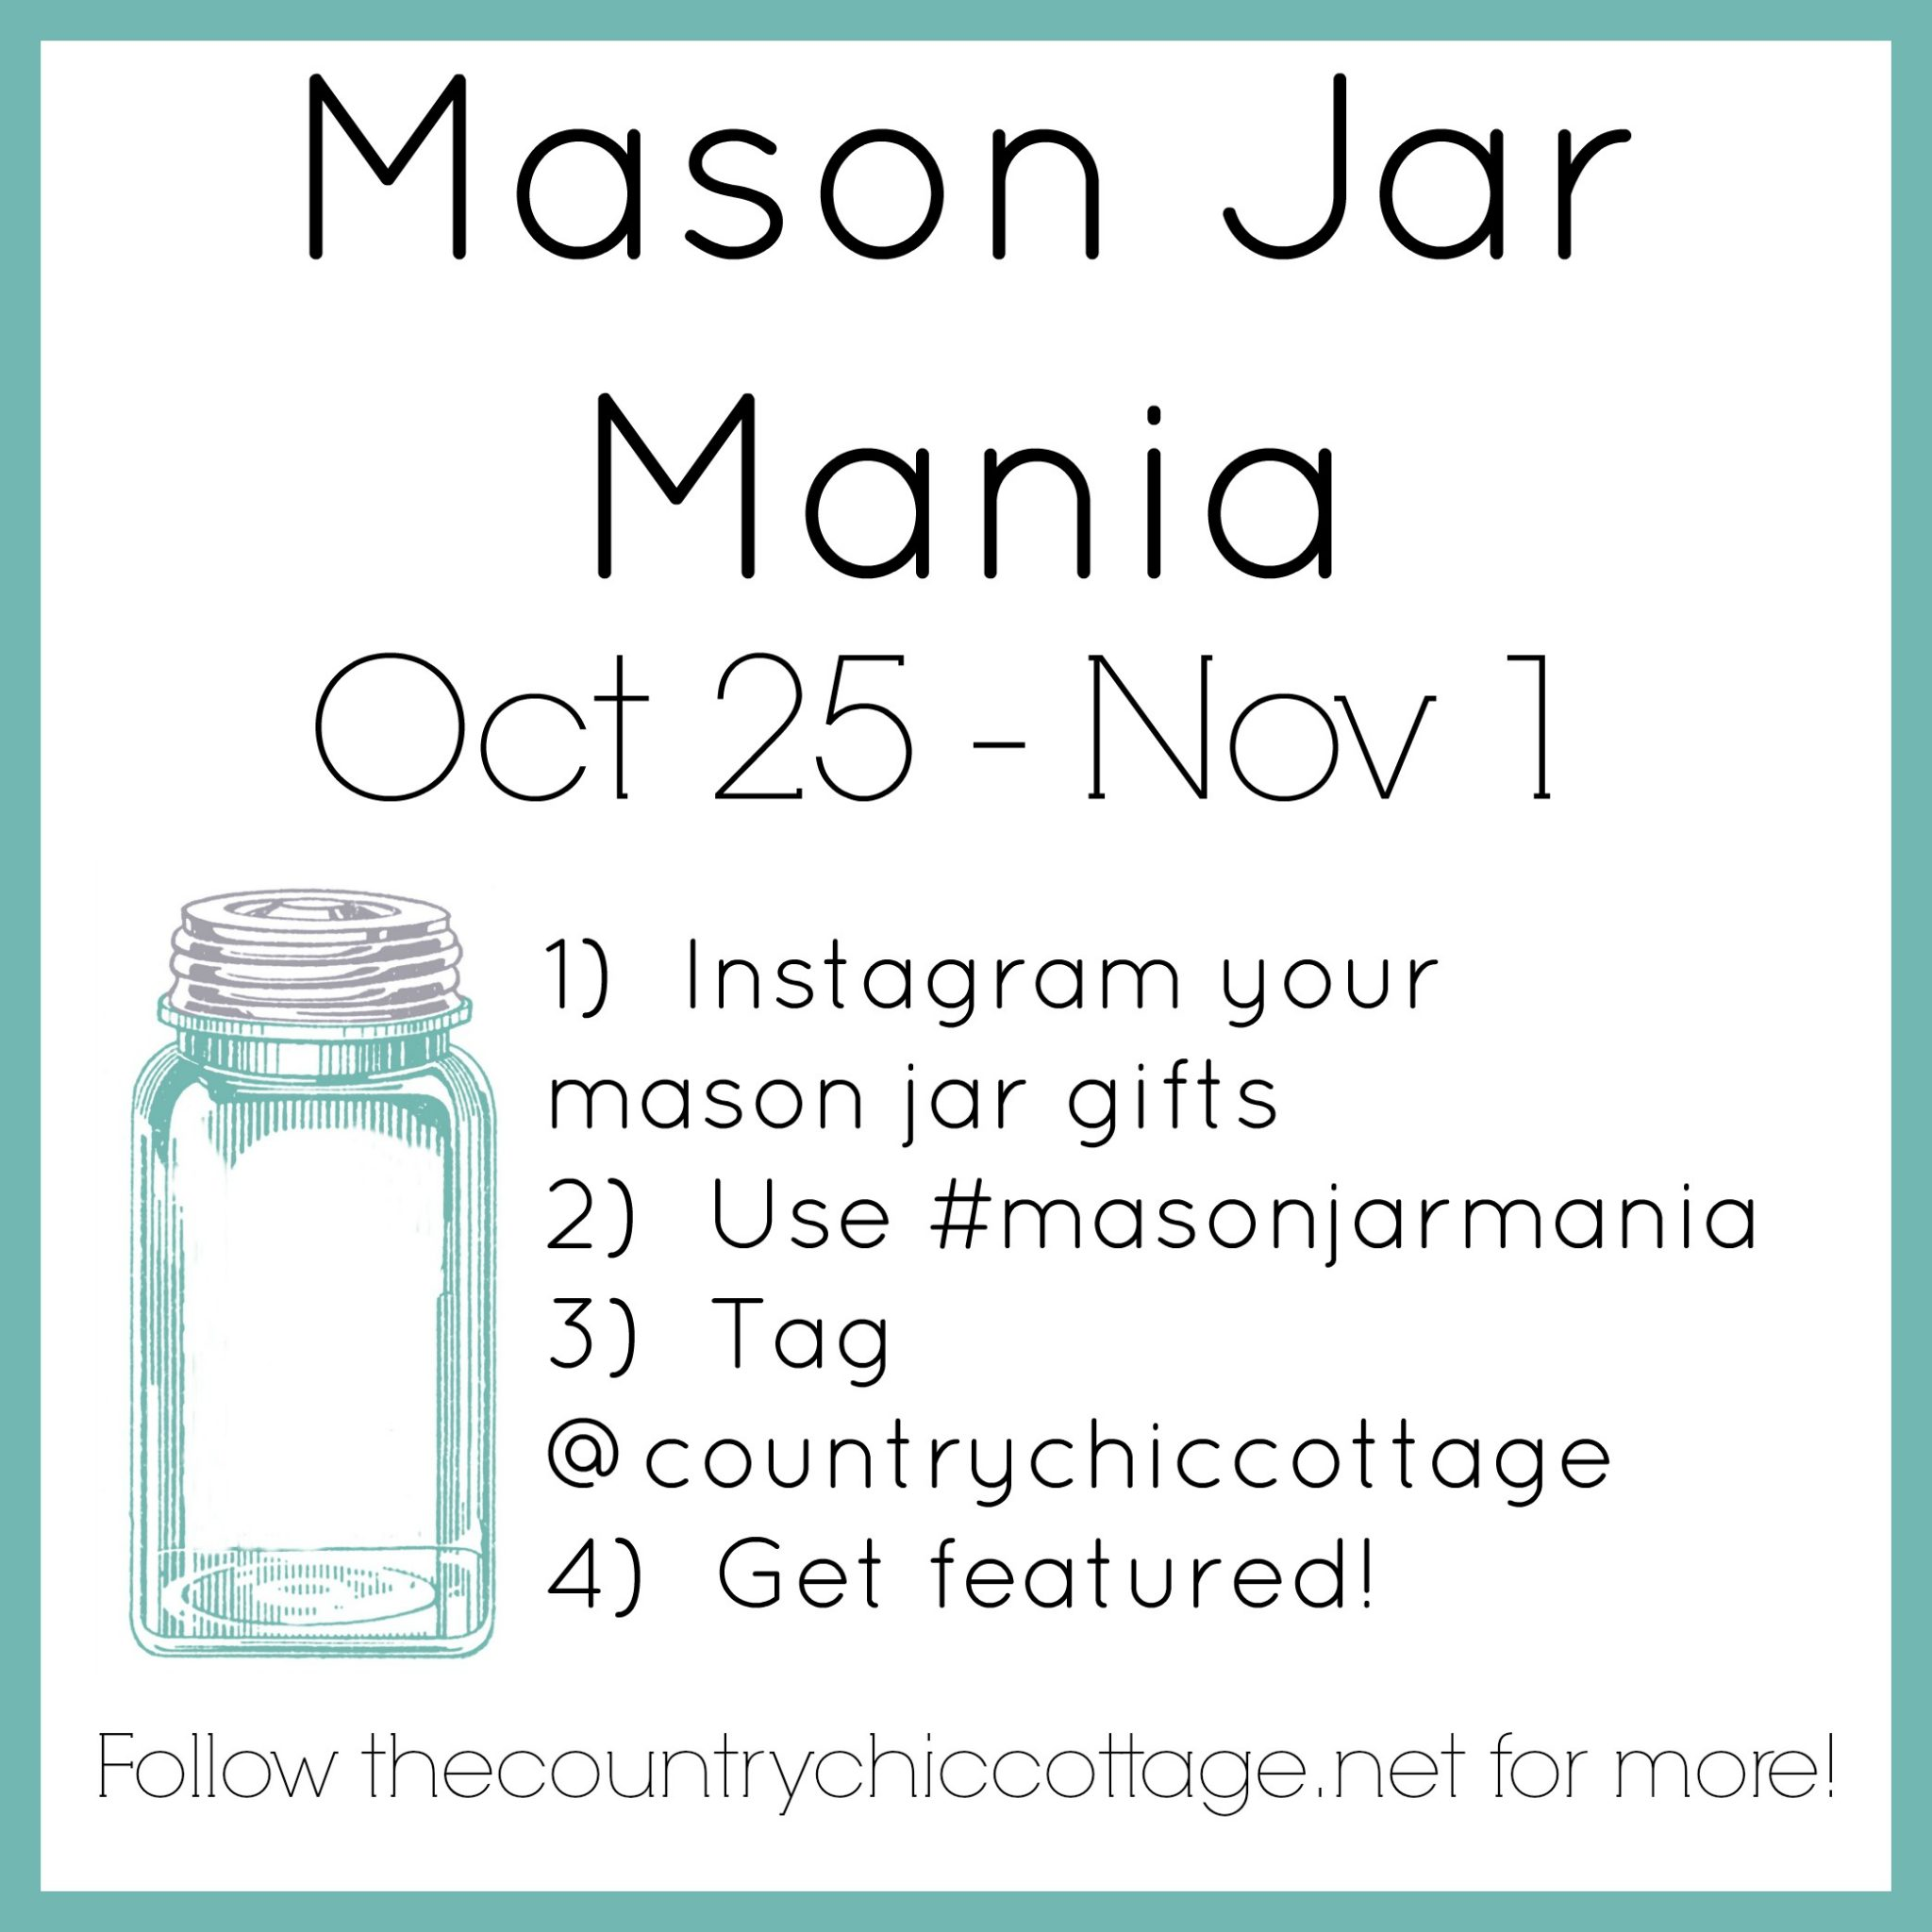 Join in Mason Jar Mania for tons of great mason jar gift ideas!